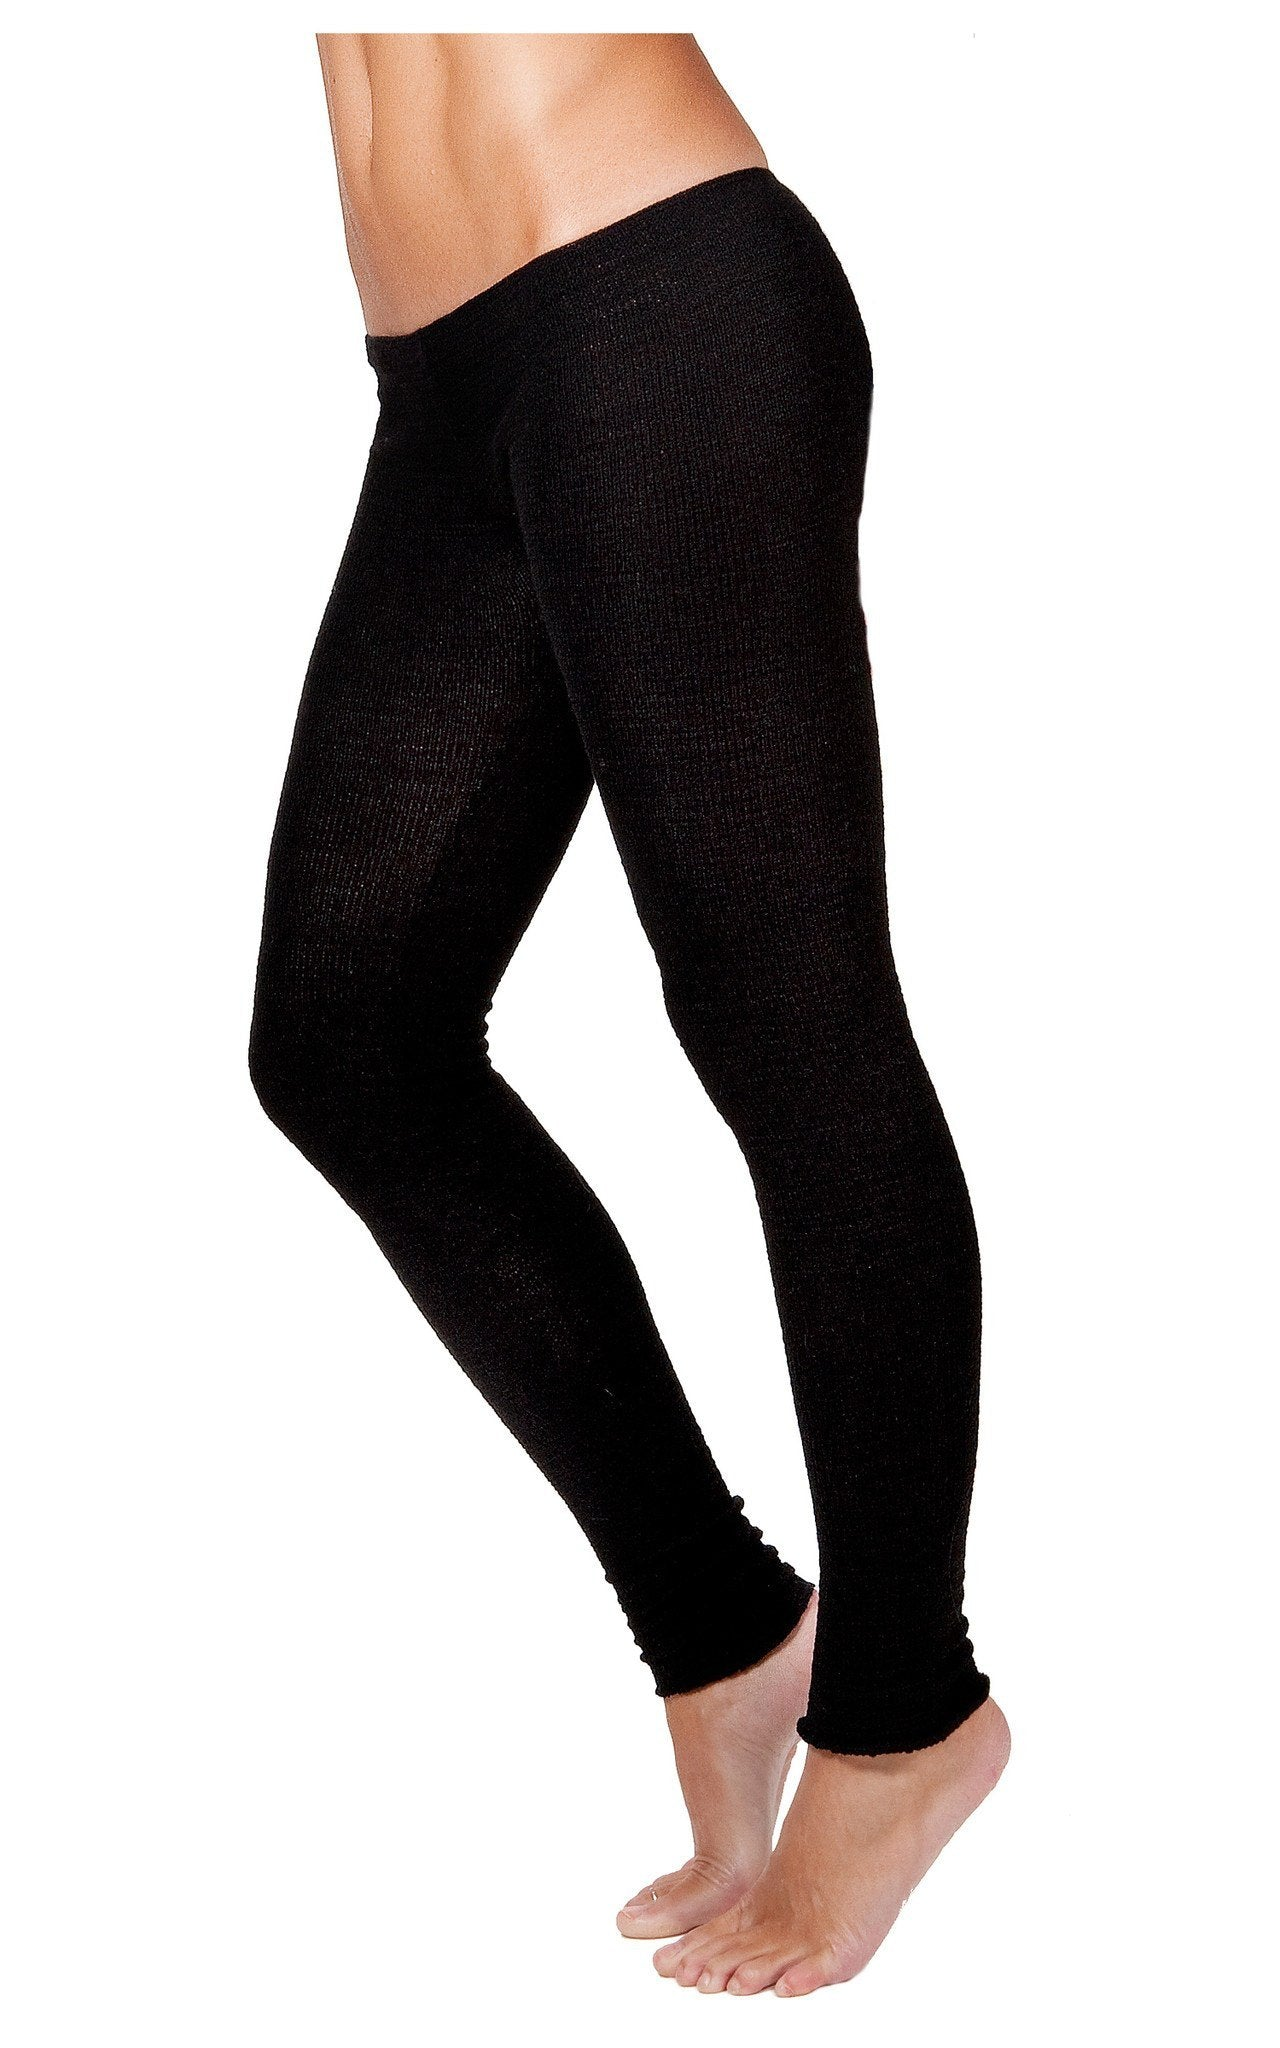 Petite / XS / New York Black Dance Yoga Low Rise Tights / Leggings @KDdanceNewYork #MadeInUSA - 1